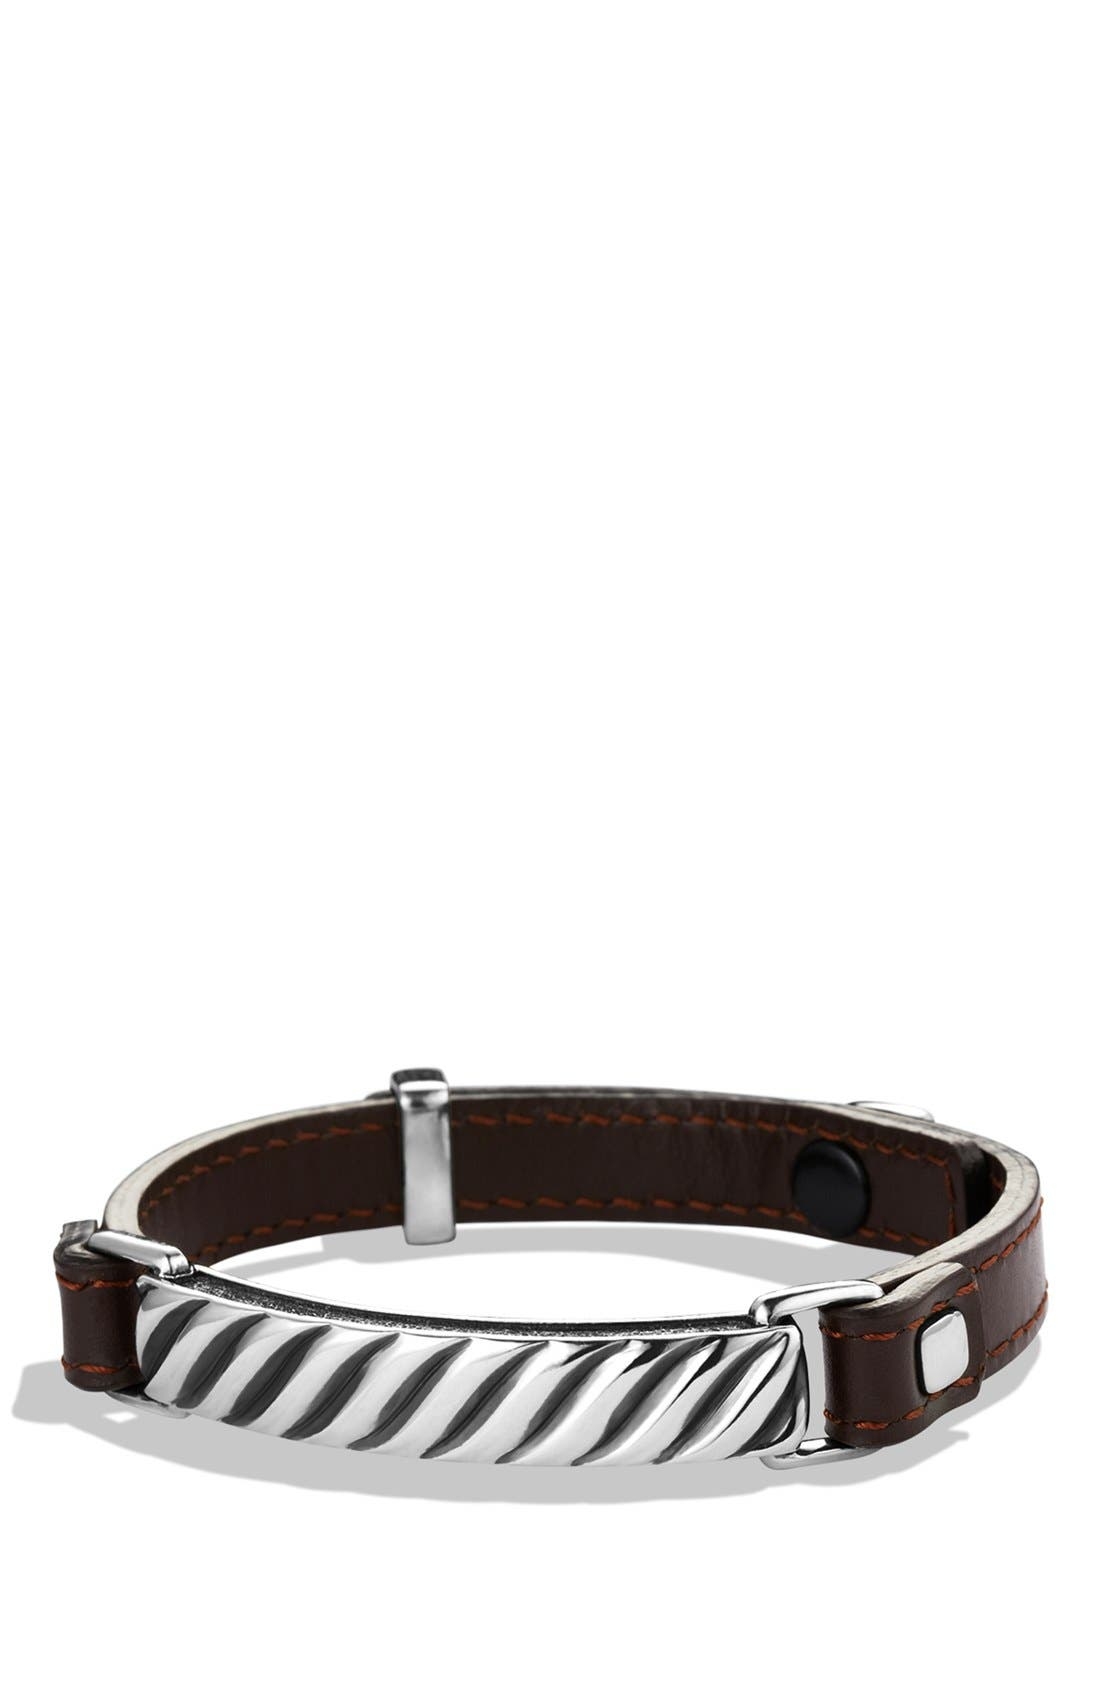 Modern Cable ID Bracelet,                         Main,                         color, Brown